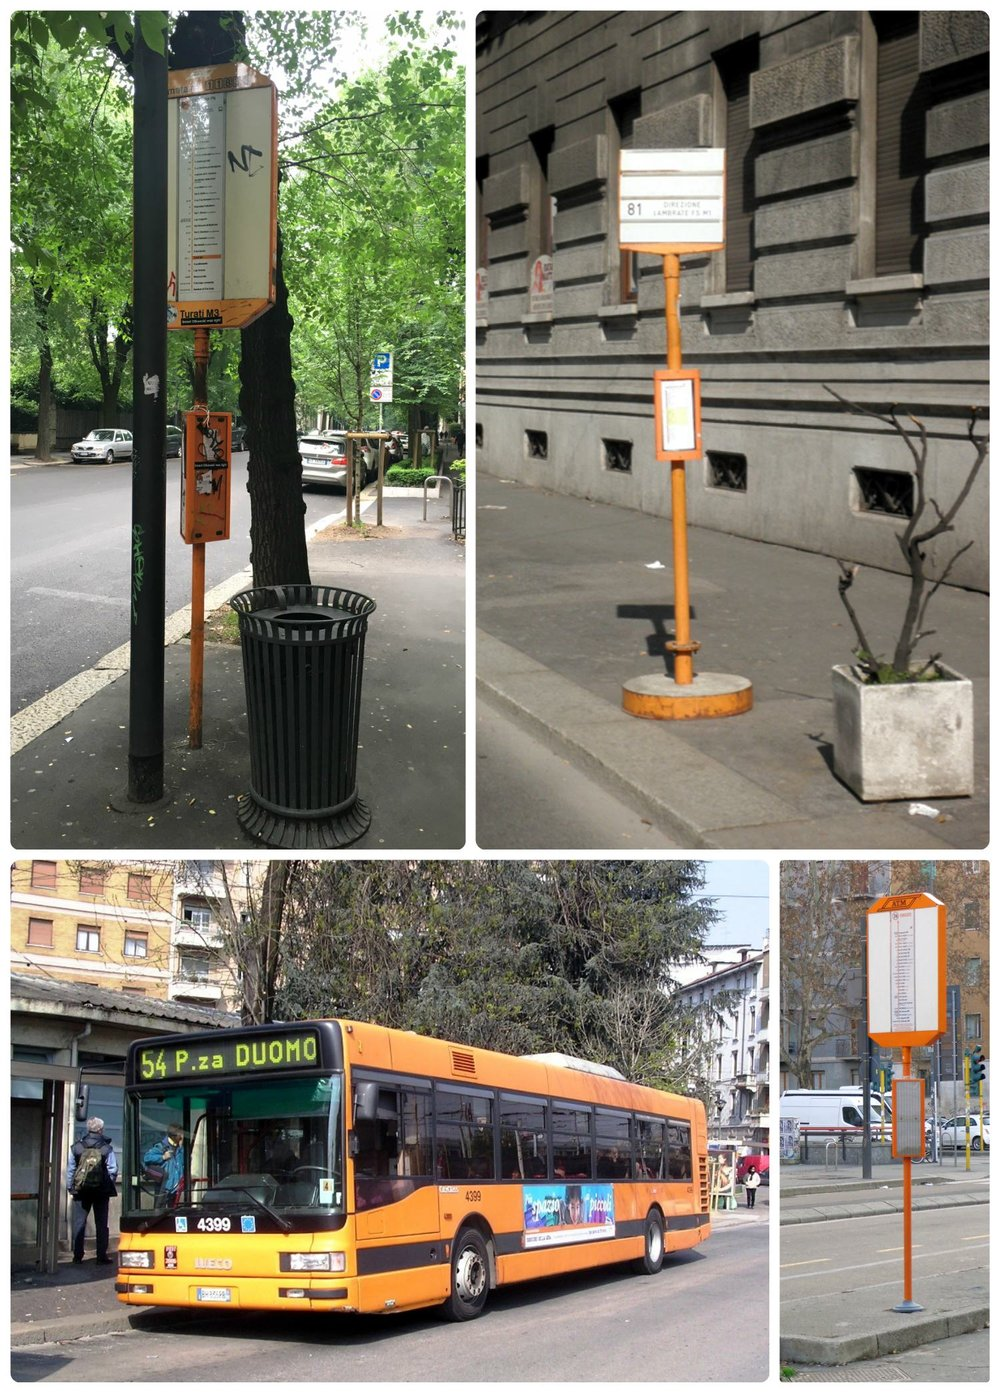 Milan bus stations aren't always easy to spot. Locate stops by looking for the yellow sign posts that list all the stops on the line.